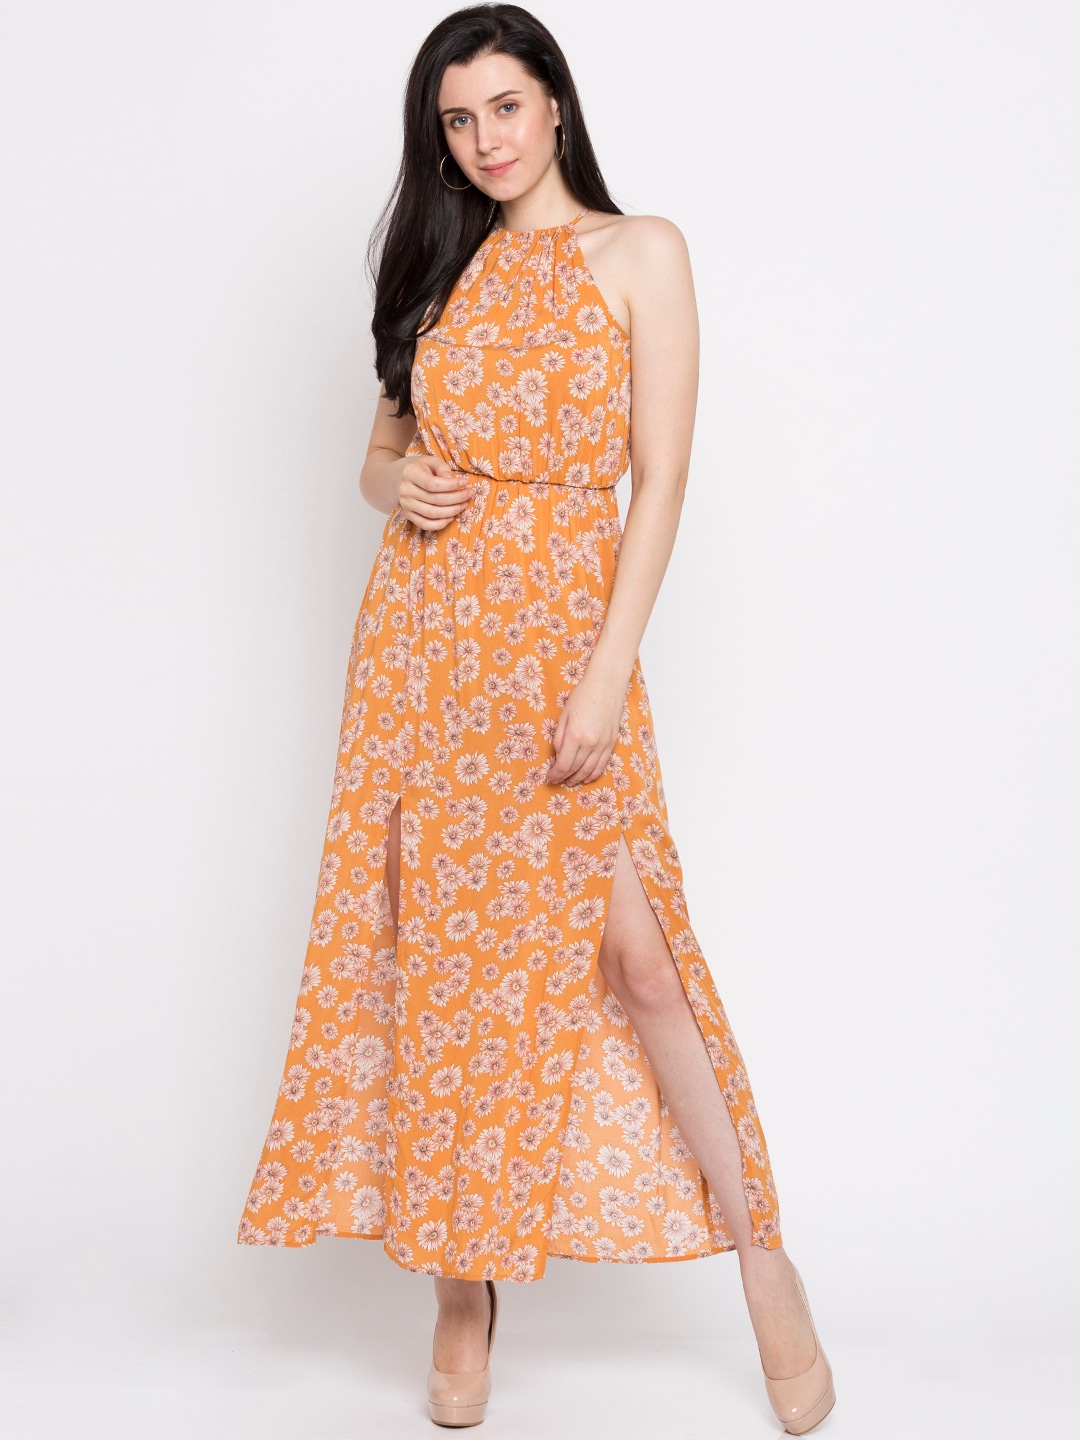 a38632001f2 Forever 21 Maxi Dresses - Buy Forever 21 Maxi Dresses online in India